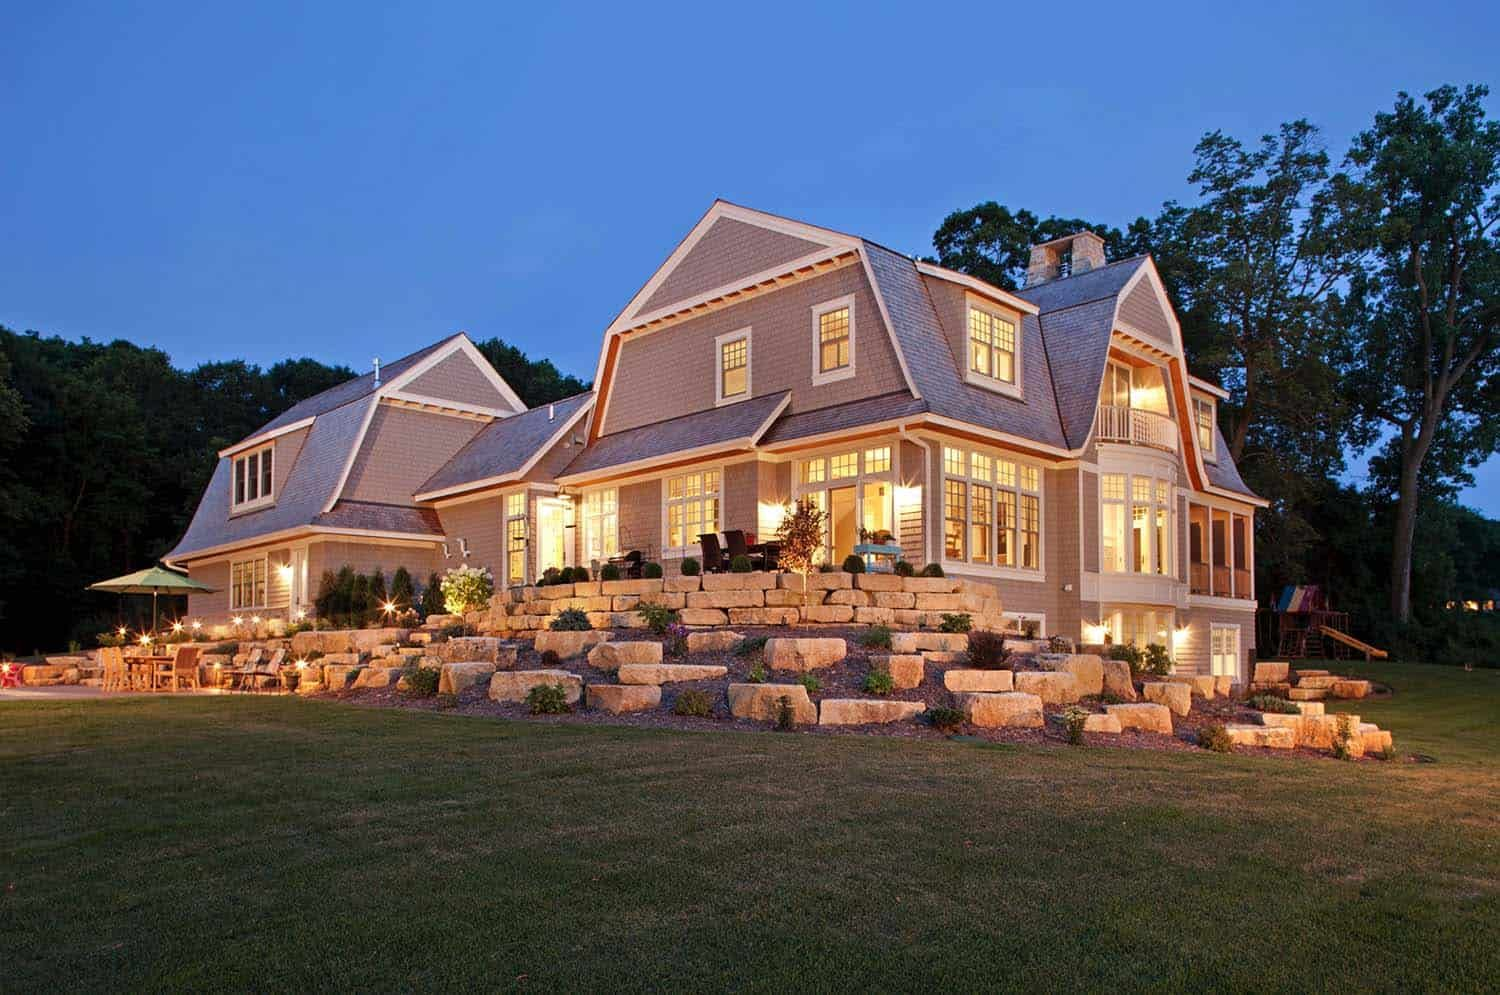 Tour A Dreamy Nantucket Style Home With A Farmhouse Twist In Minnesota In 2020 Nantucket Style Homes Nantucket Style House Exterior